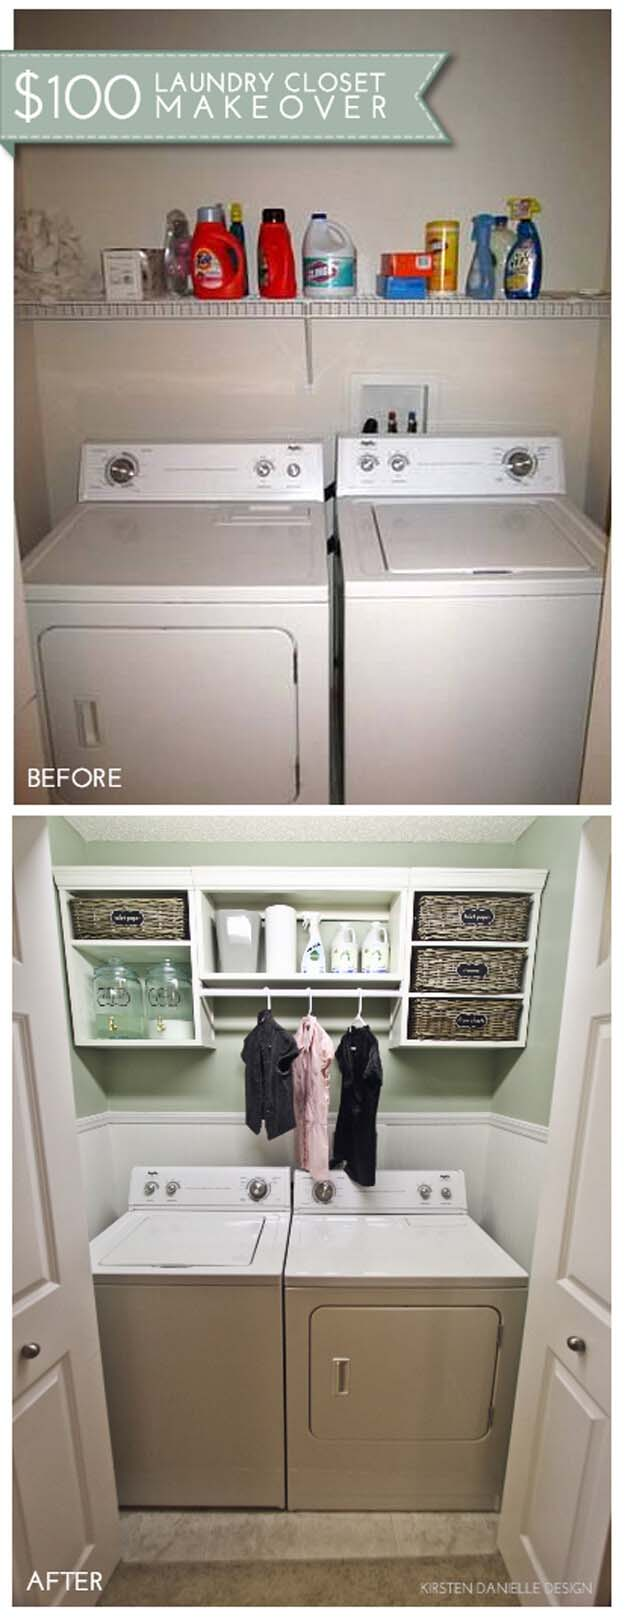 Cute and Compact with Storage Cubbies #laundryroom #makeover #decorhomeideas